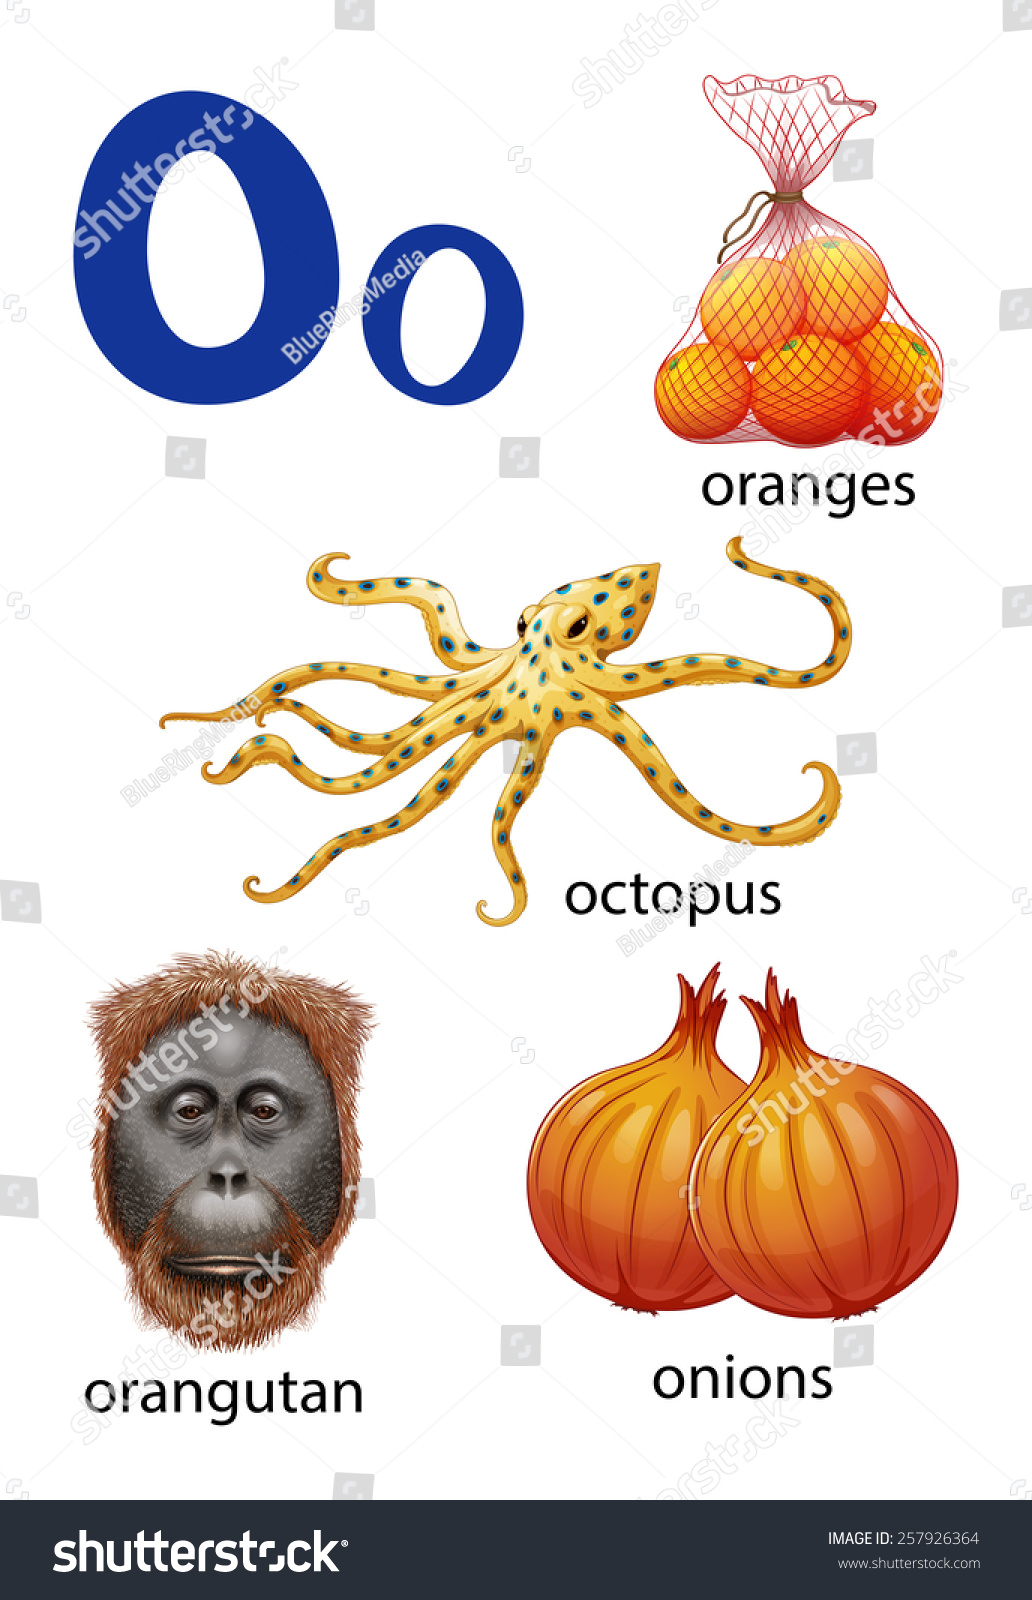 Things That Start Letter O On Stock Vector   Shutterstock